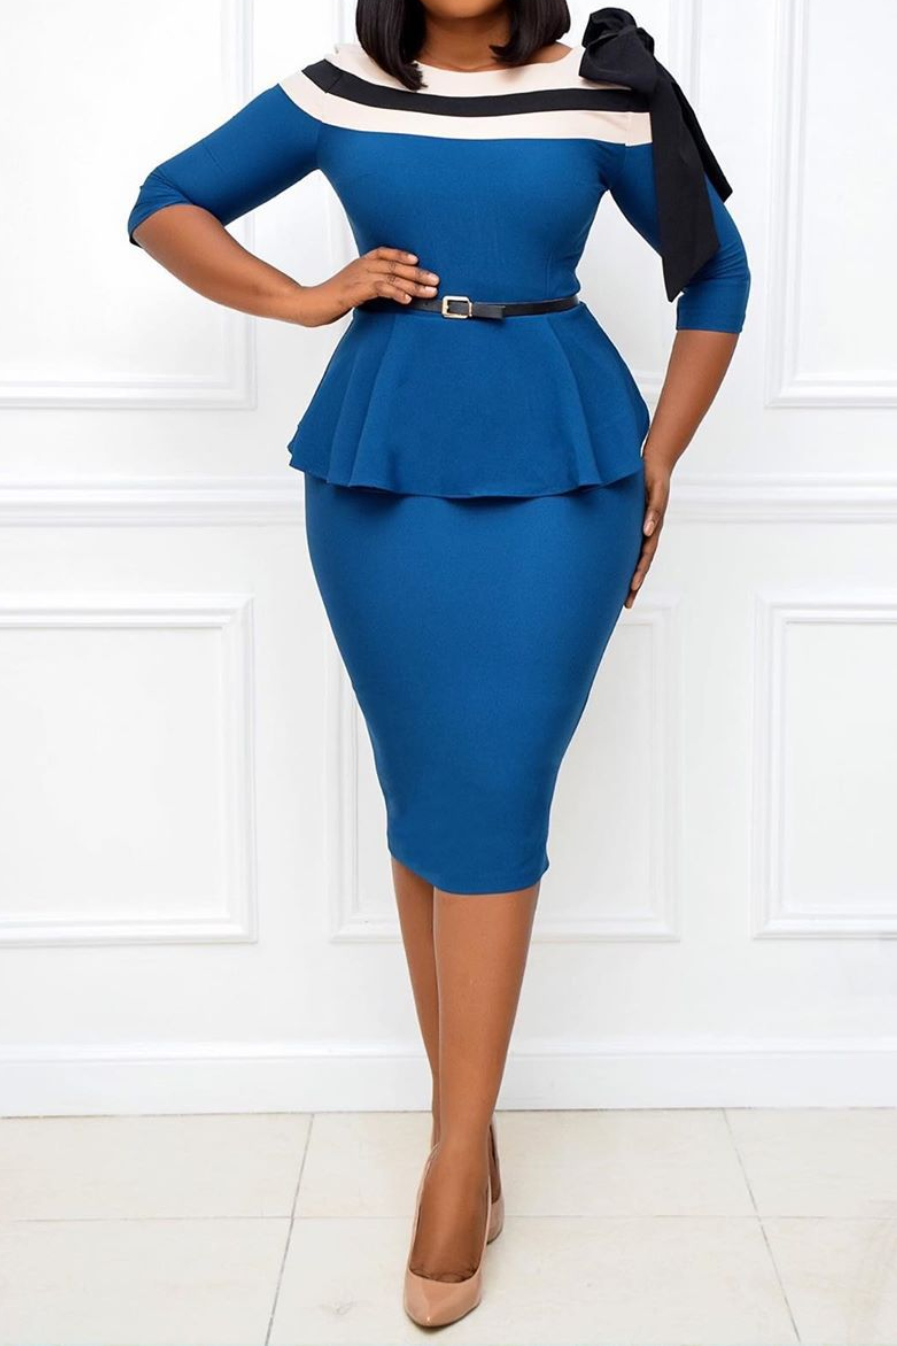 Plus Size Women's Clothing Color Matching Lotus Leaf Occupation Tight Dress